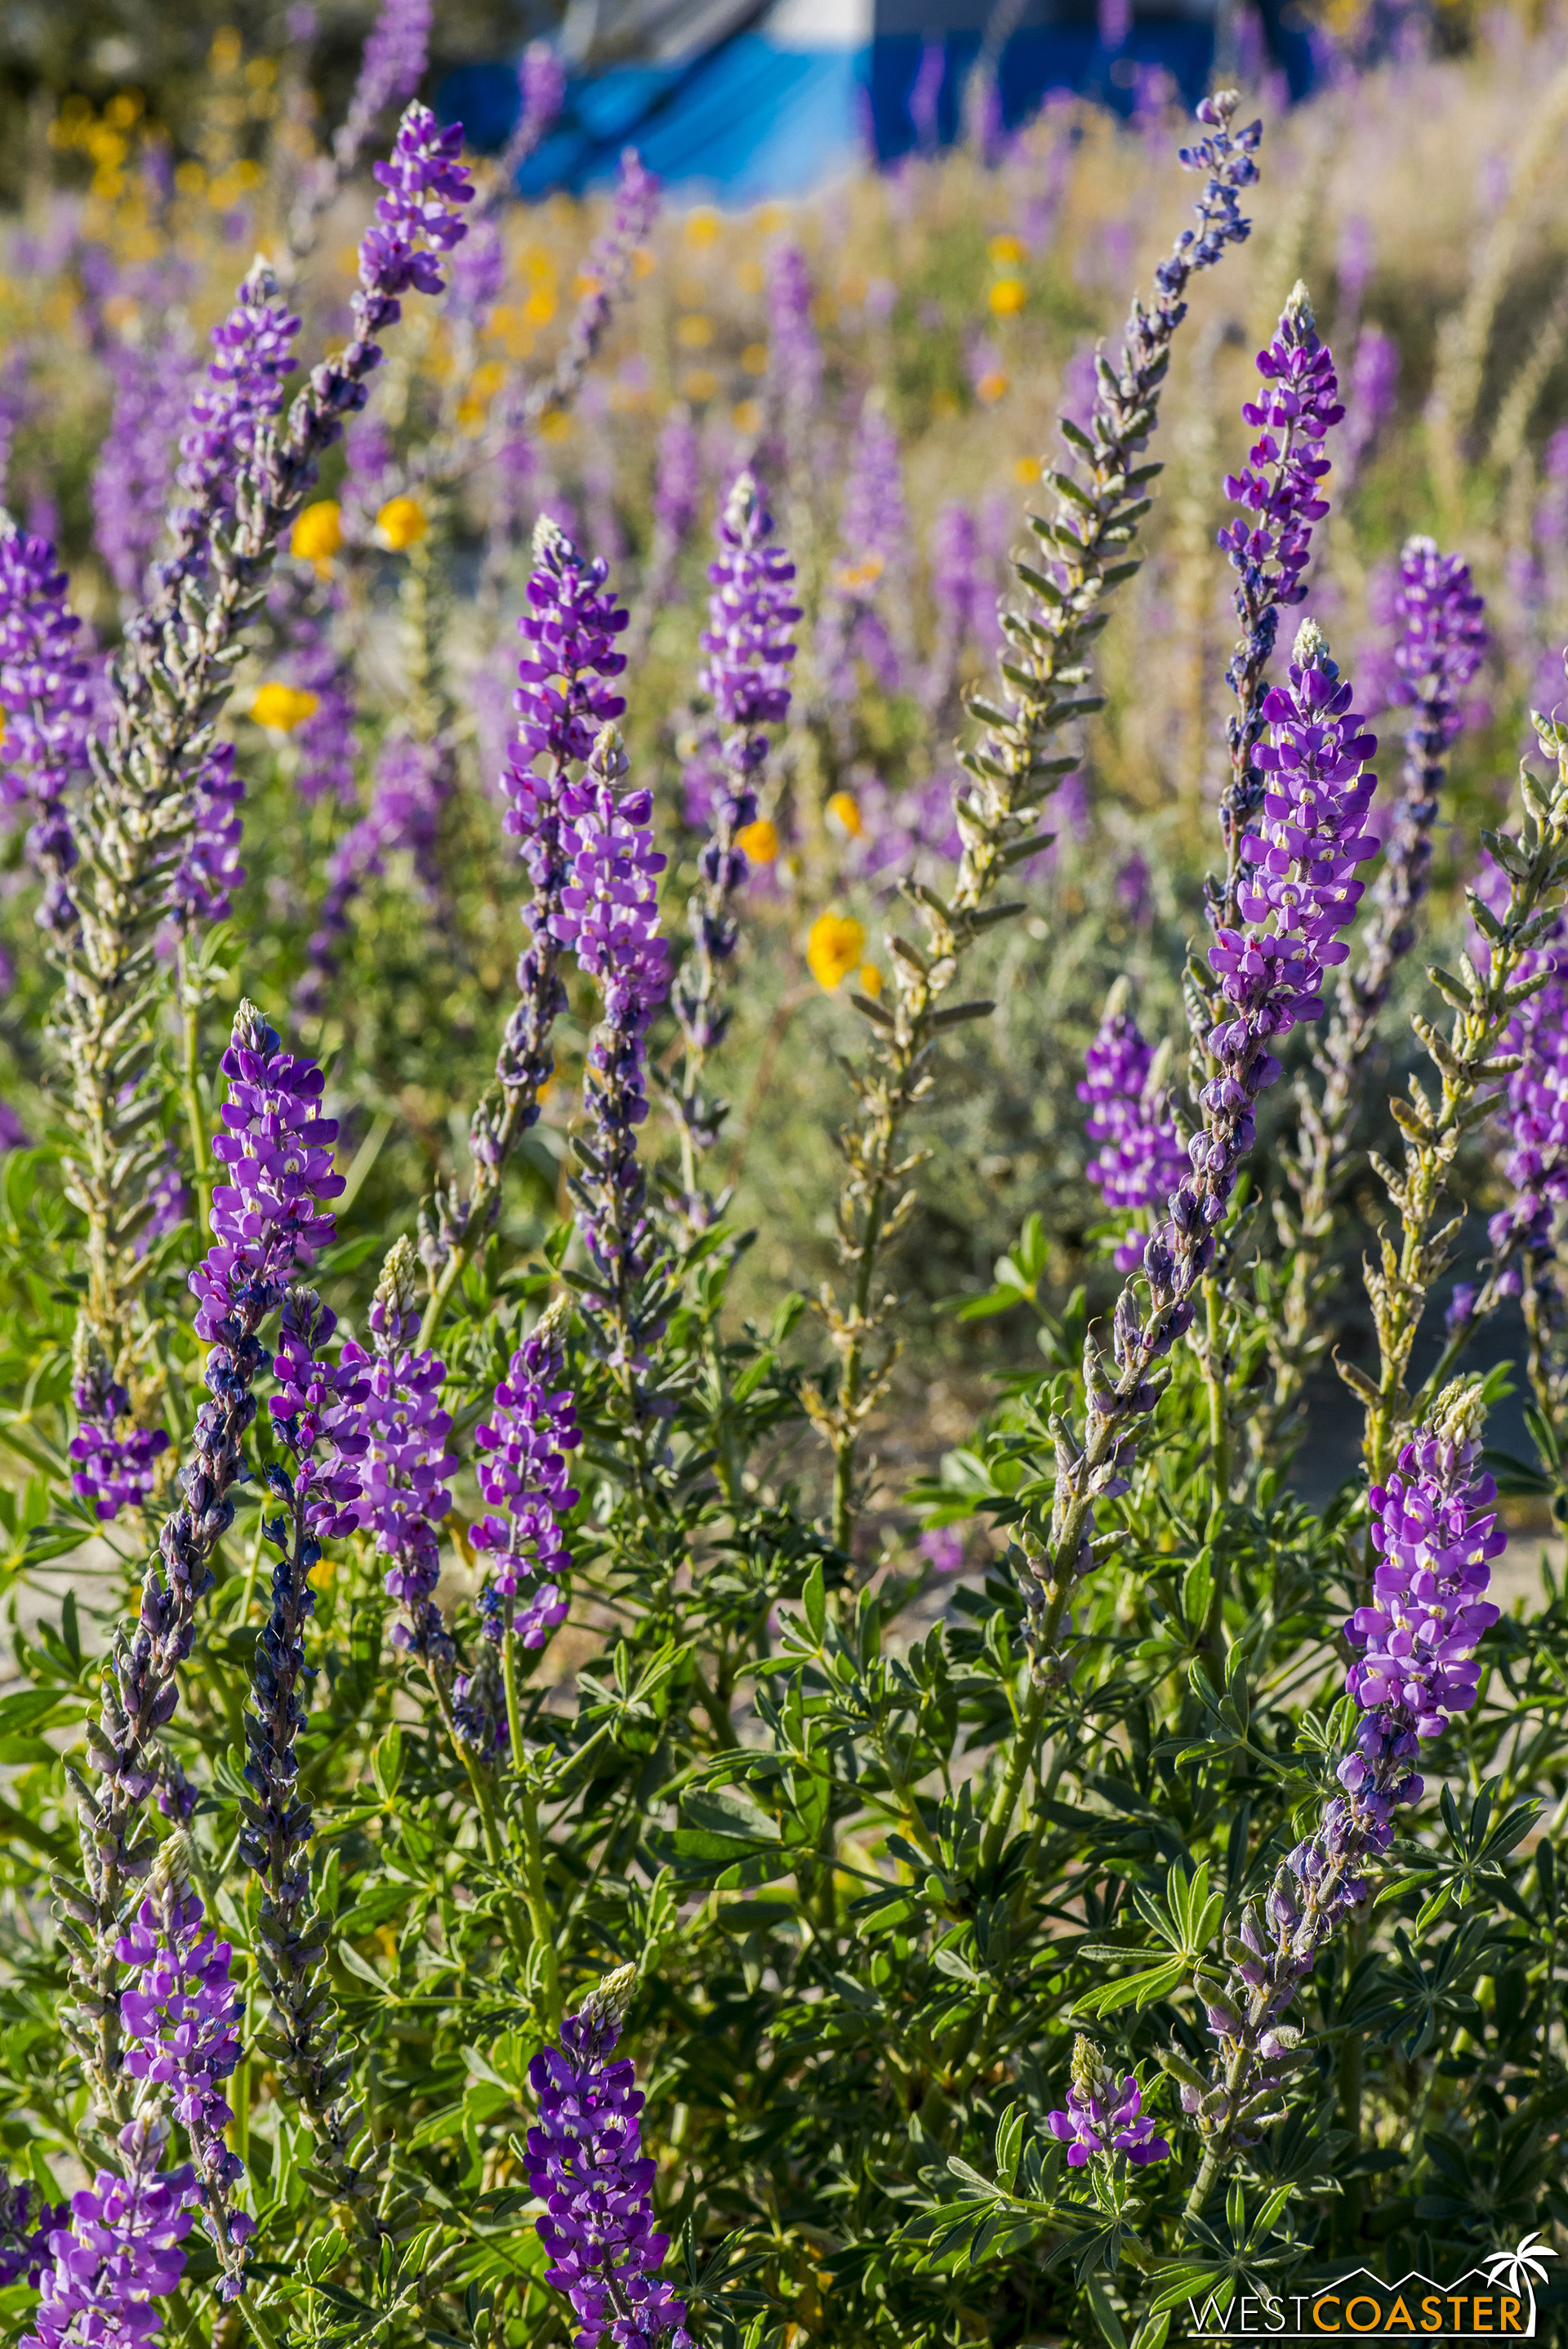 More lupine out here.  I love how crisp they look!